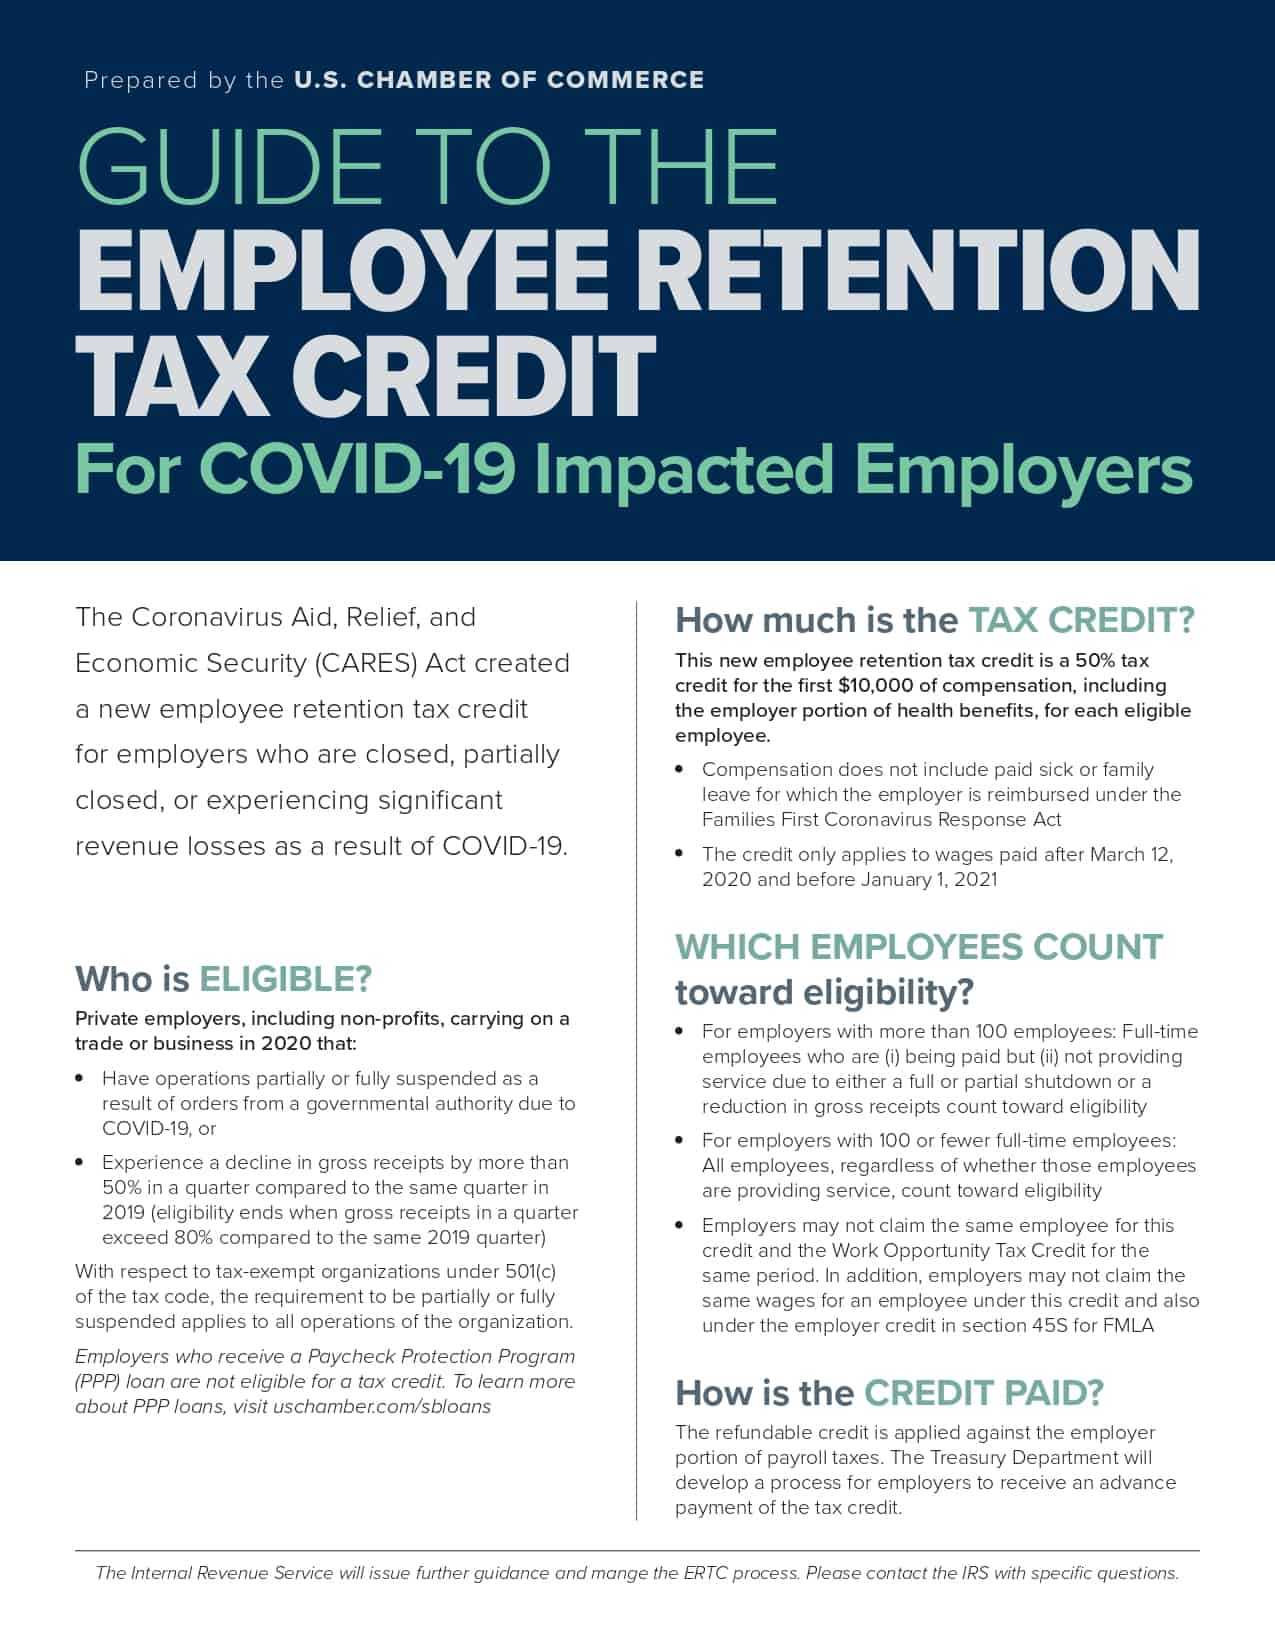 uscc_covid19_employee-retention-tax-credit_page-0001